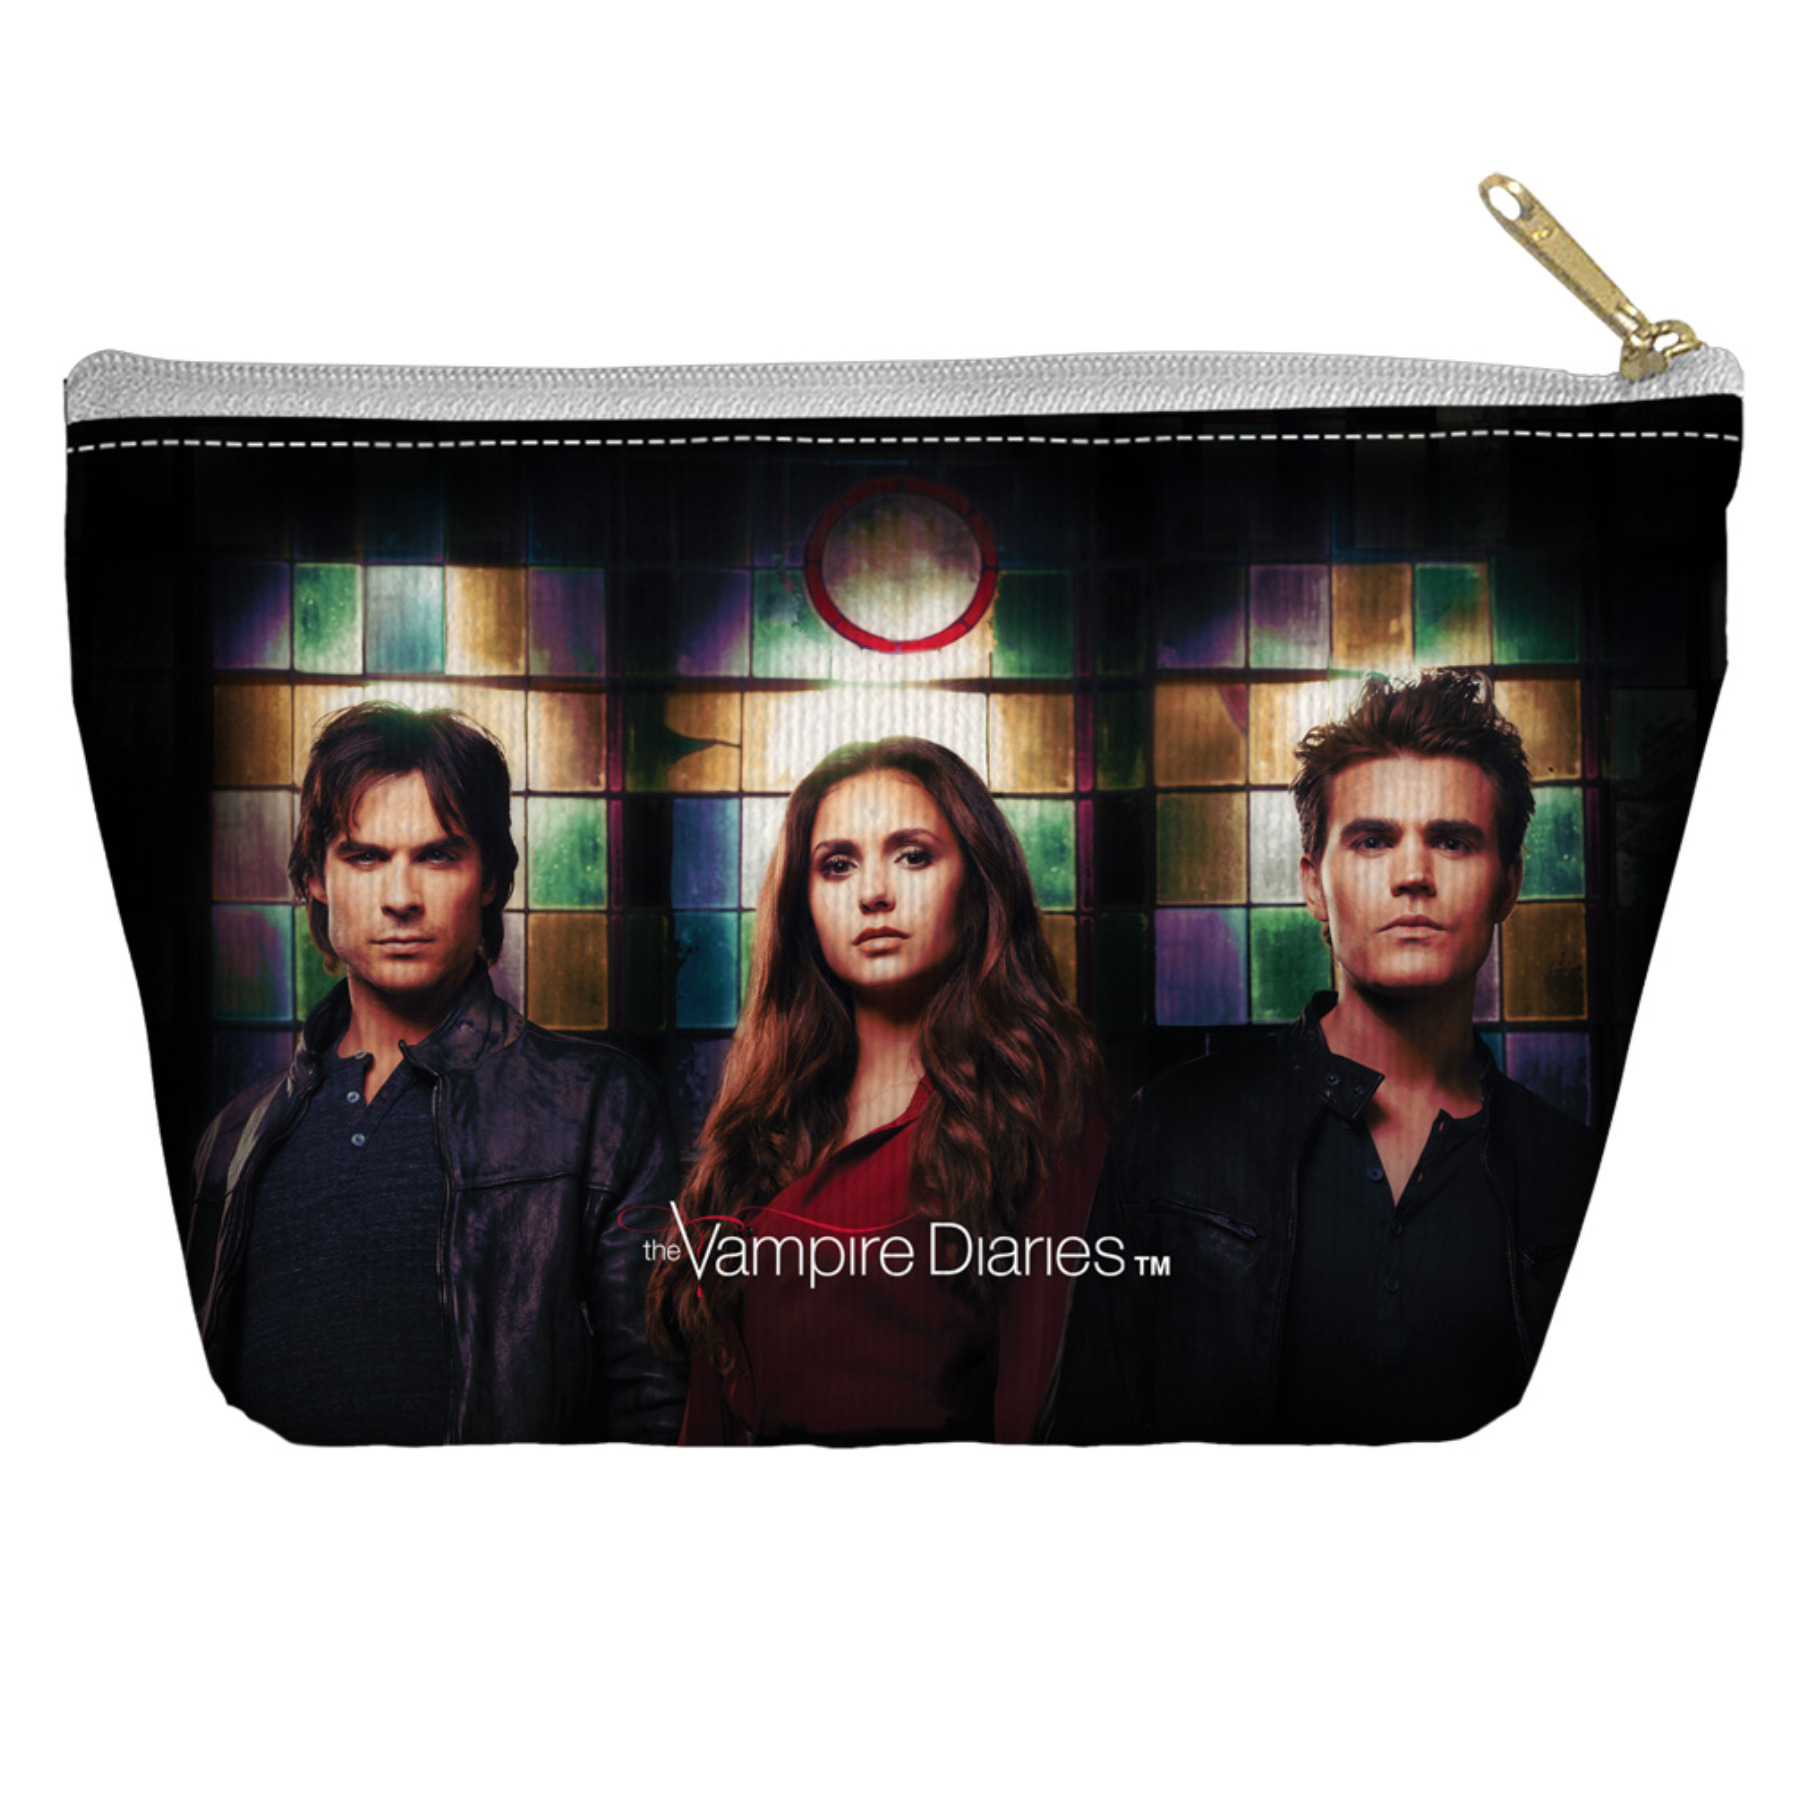 Vampire Diaries/Stained Glass Accessory Pouch White 12.5x8.5 By Trevco TREV-WBT459-PCH2-12.5x8.5